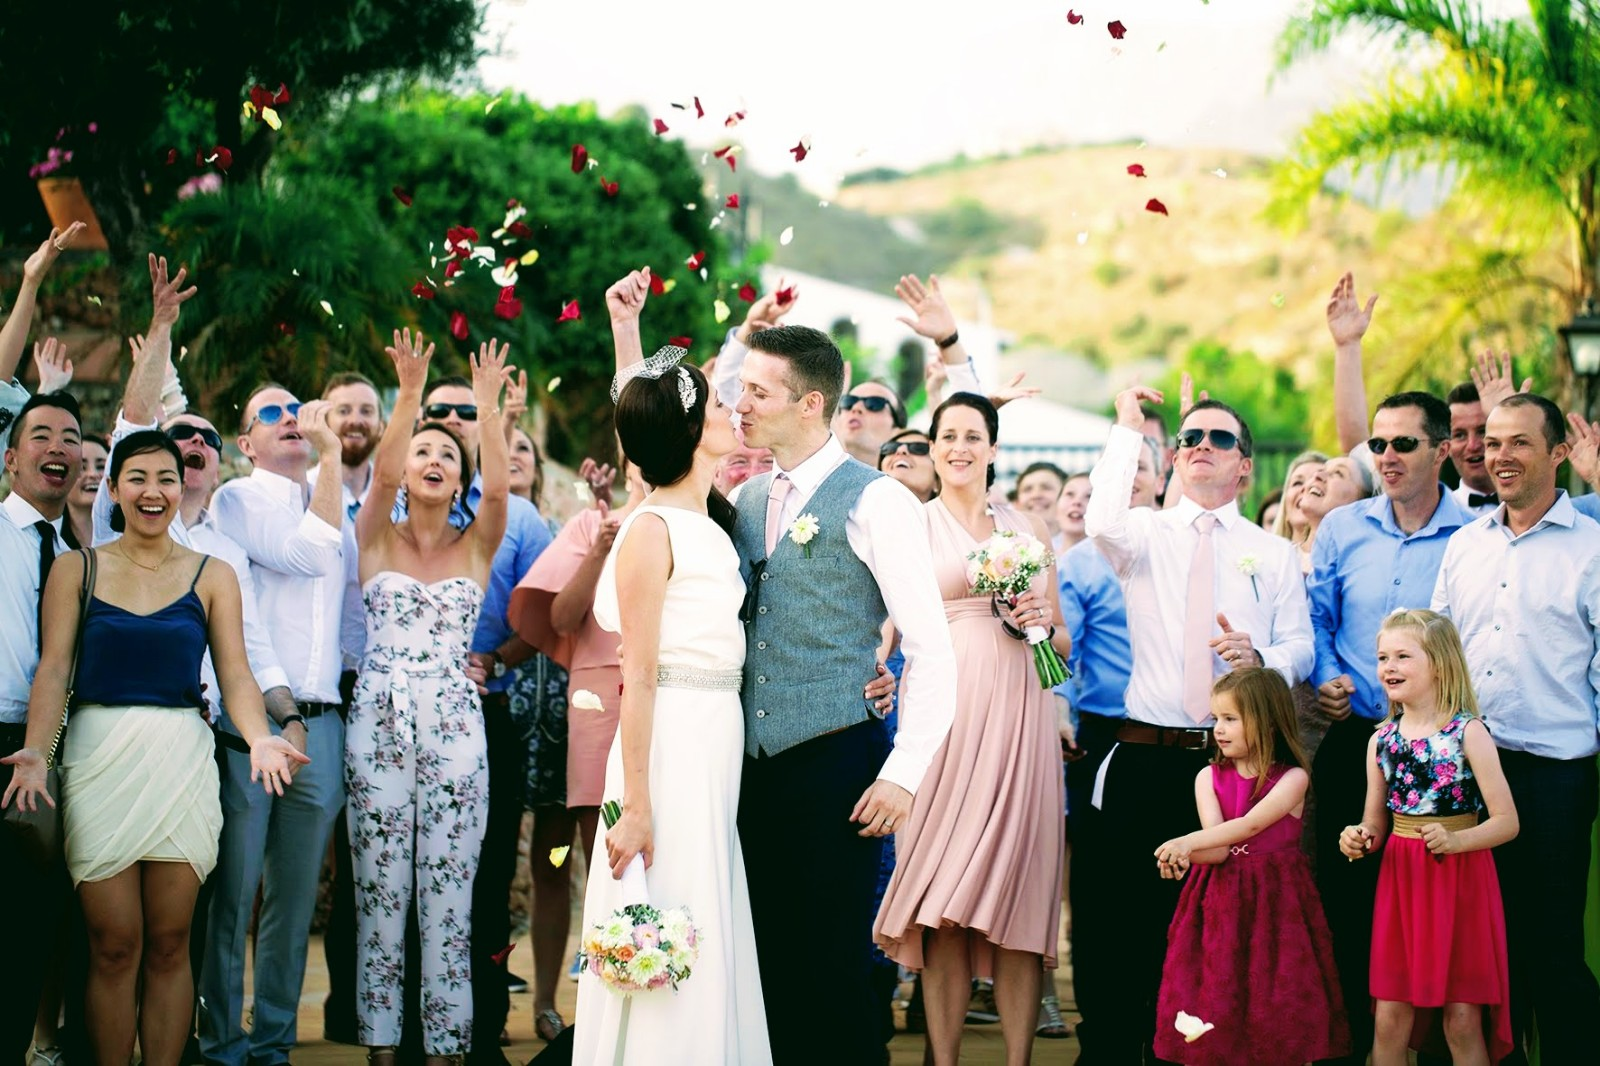 Family throwing petals to couple